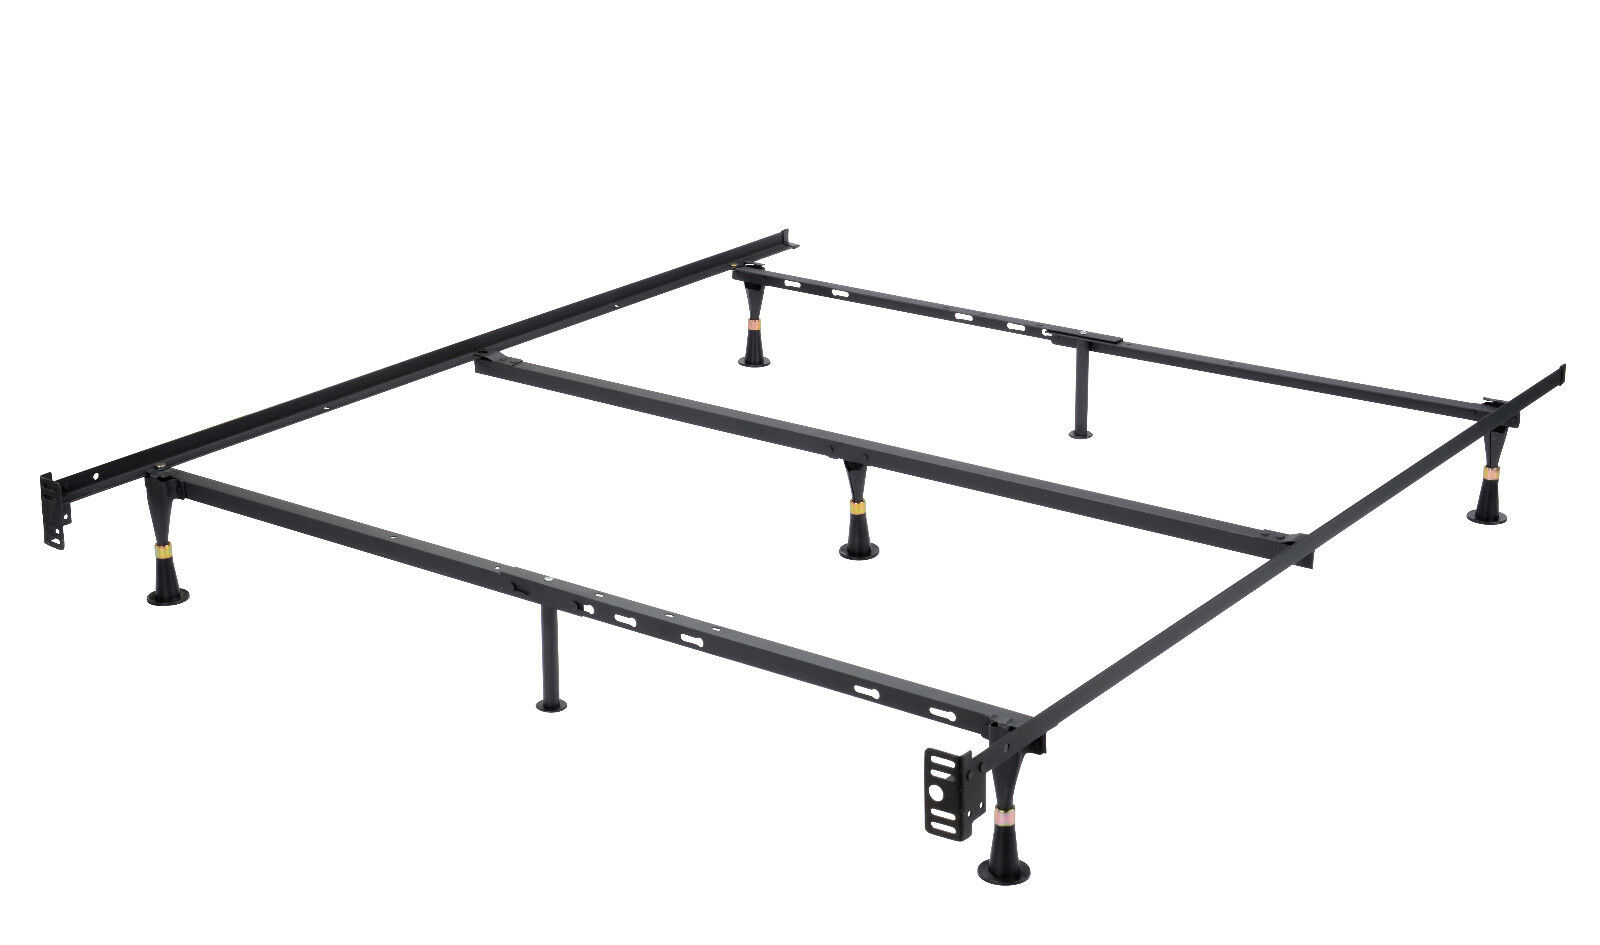 7 leg heavy duty metal queen size bed frame with center